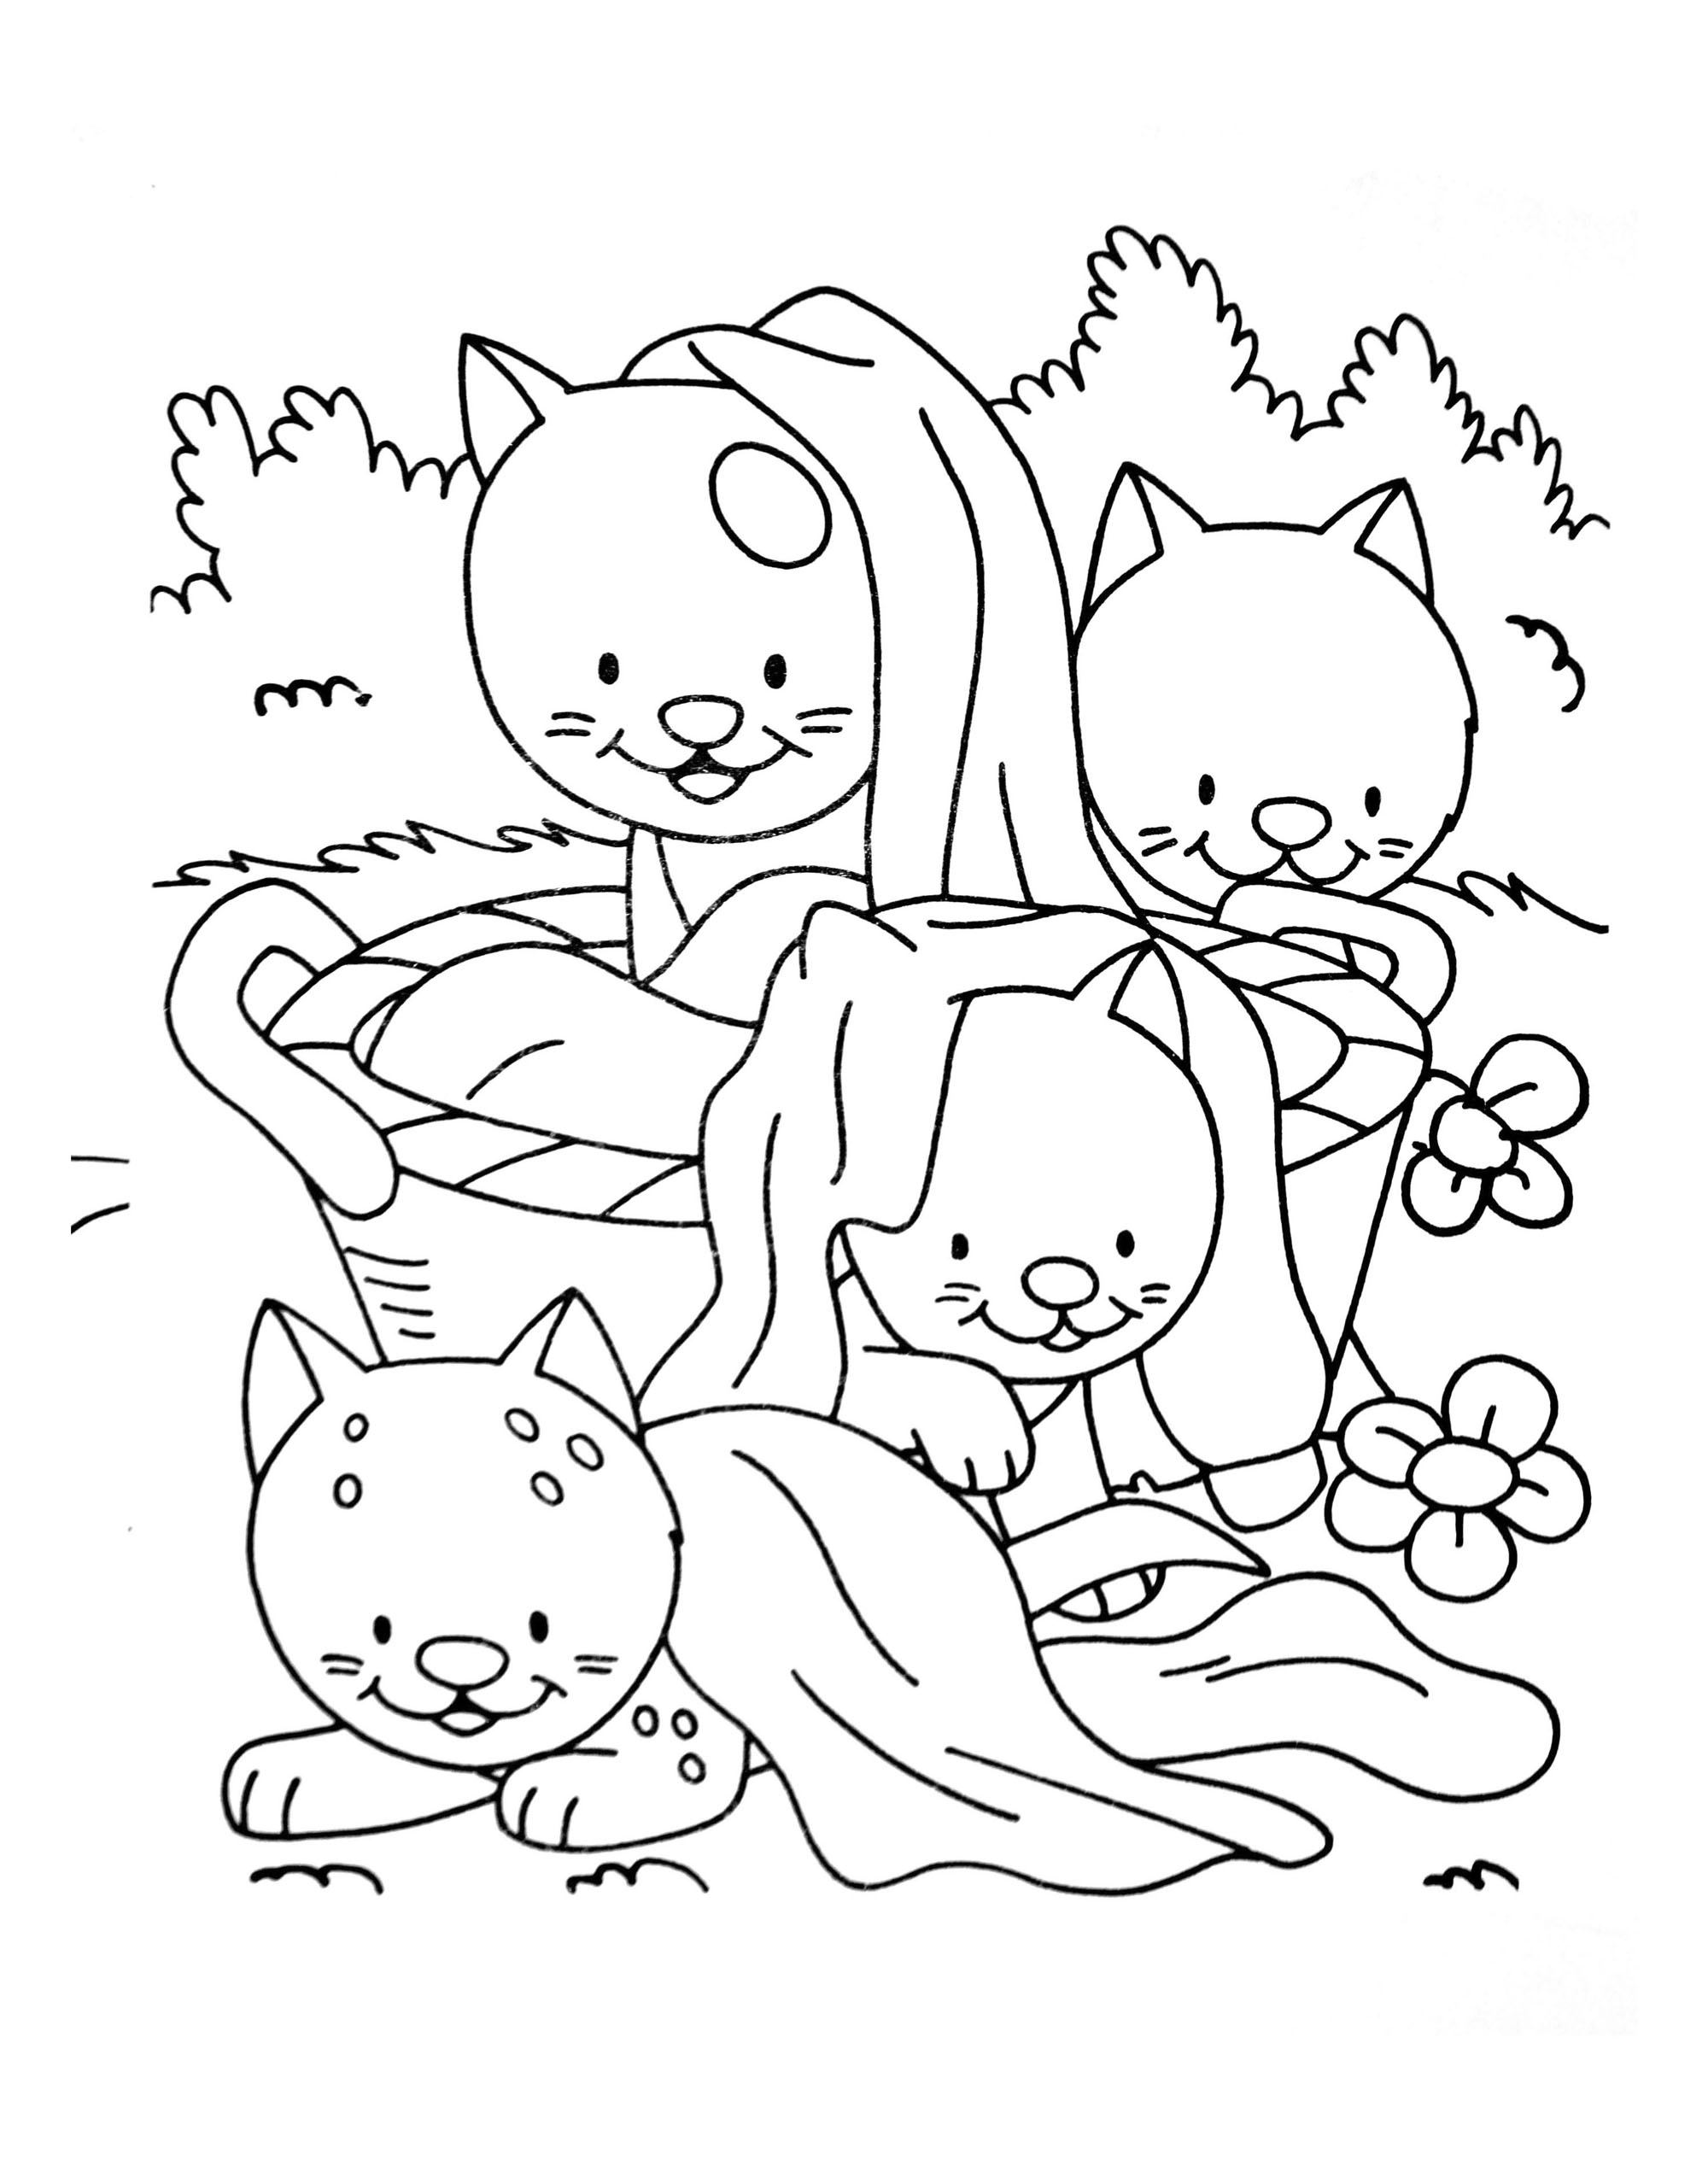 a imprimer chat 2 coloriages de chats coloriages enfants biboon. Black Bedroom Furniture Sets. Home Design Ideas